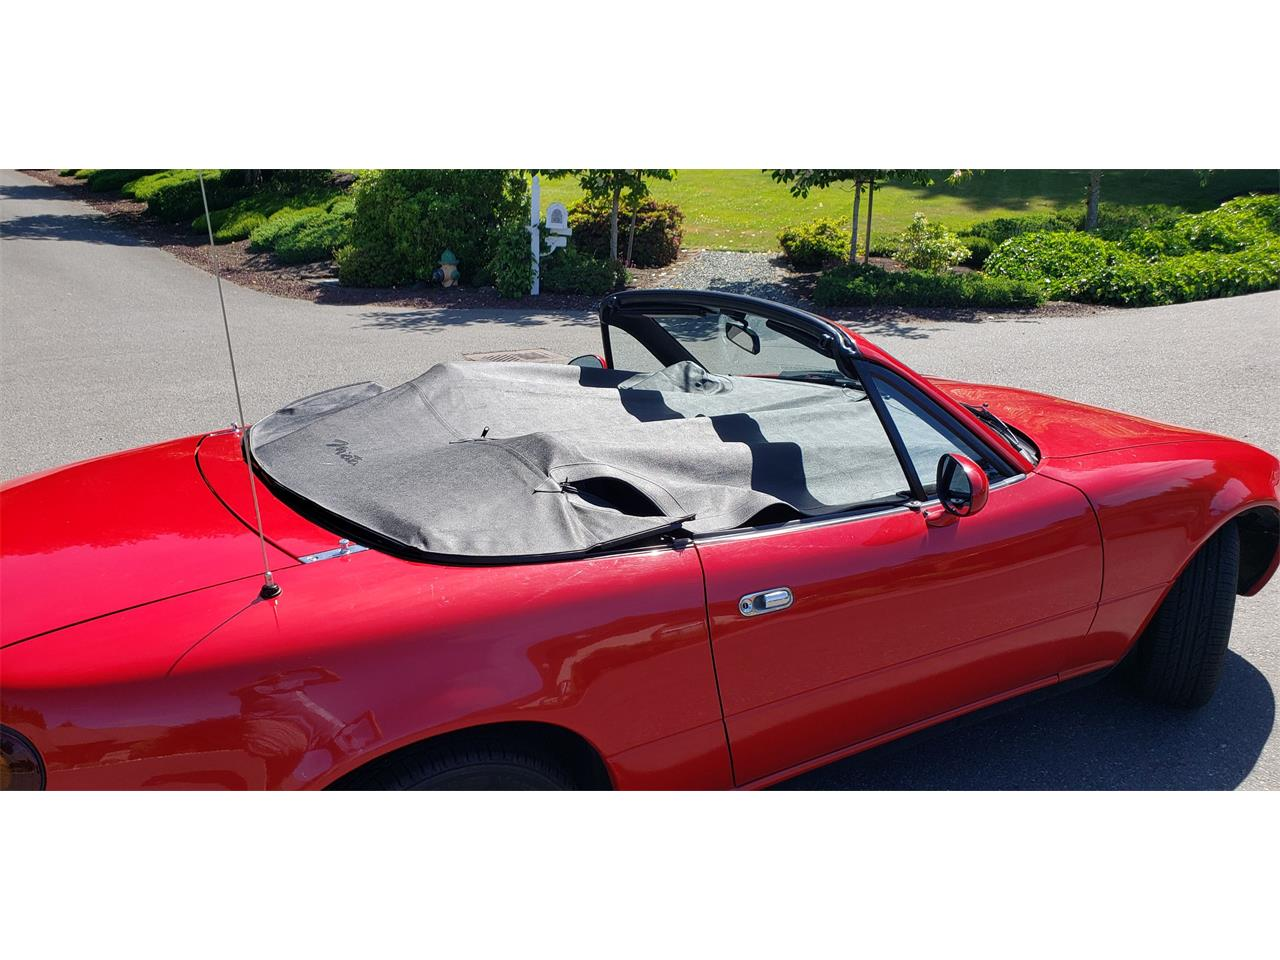 1991 Mazda Miata for sale in Camano Island, WA – photo 4